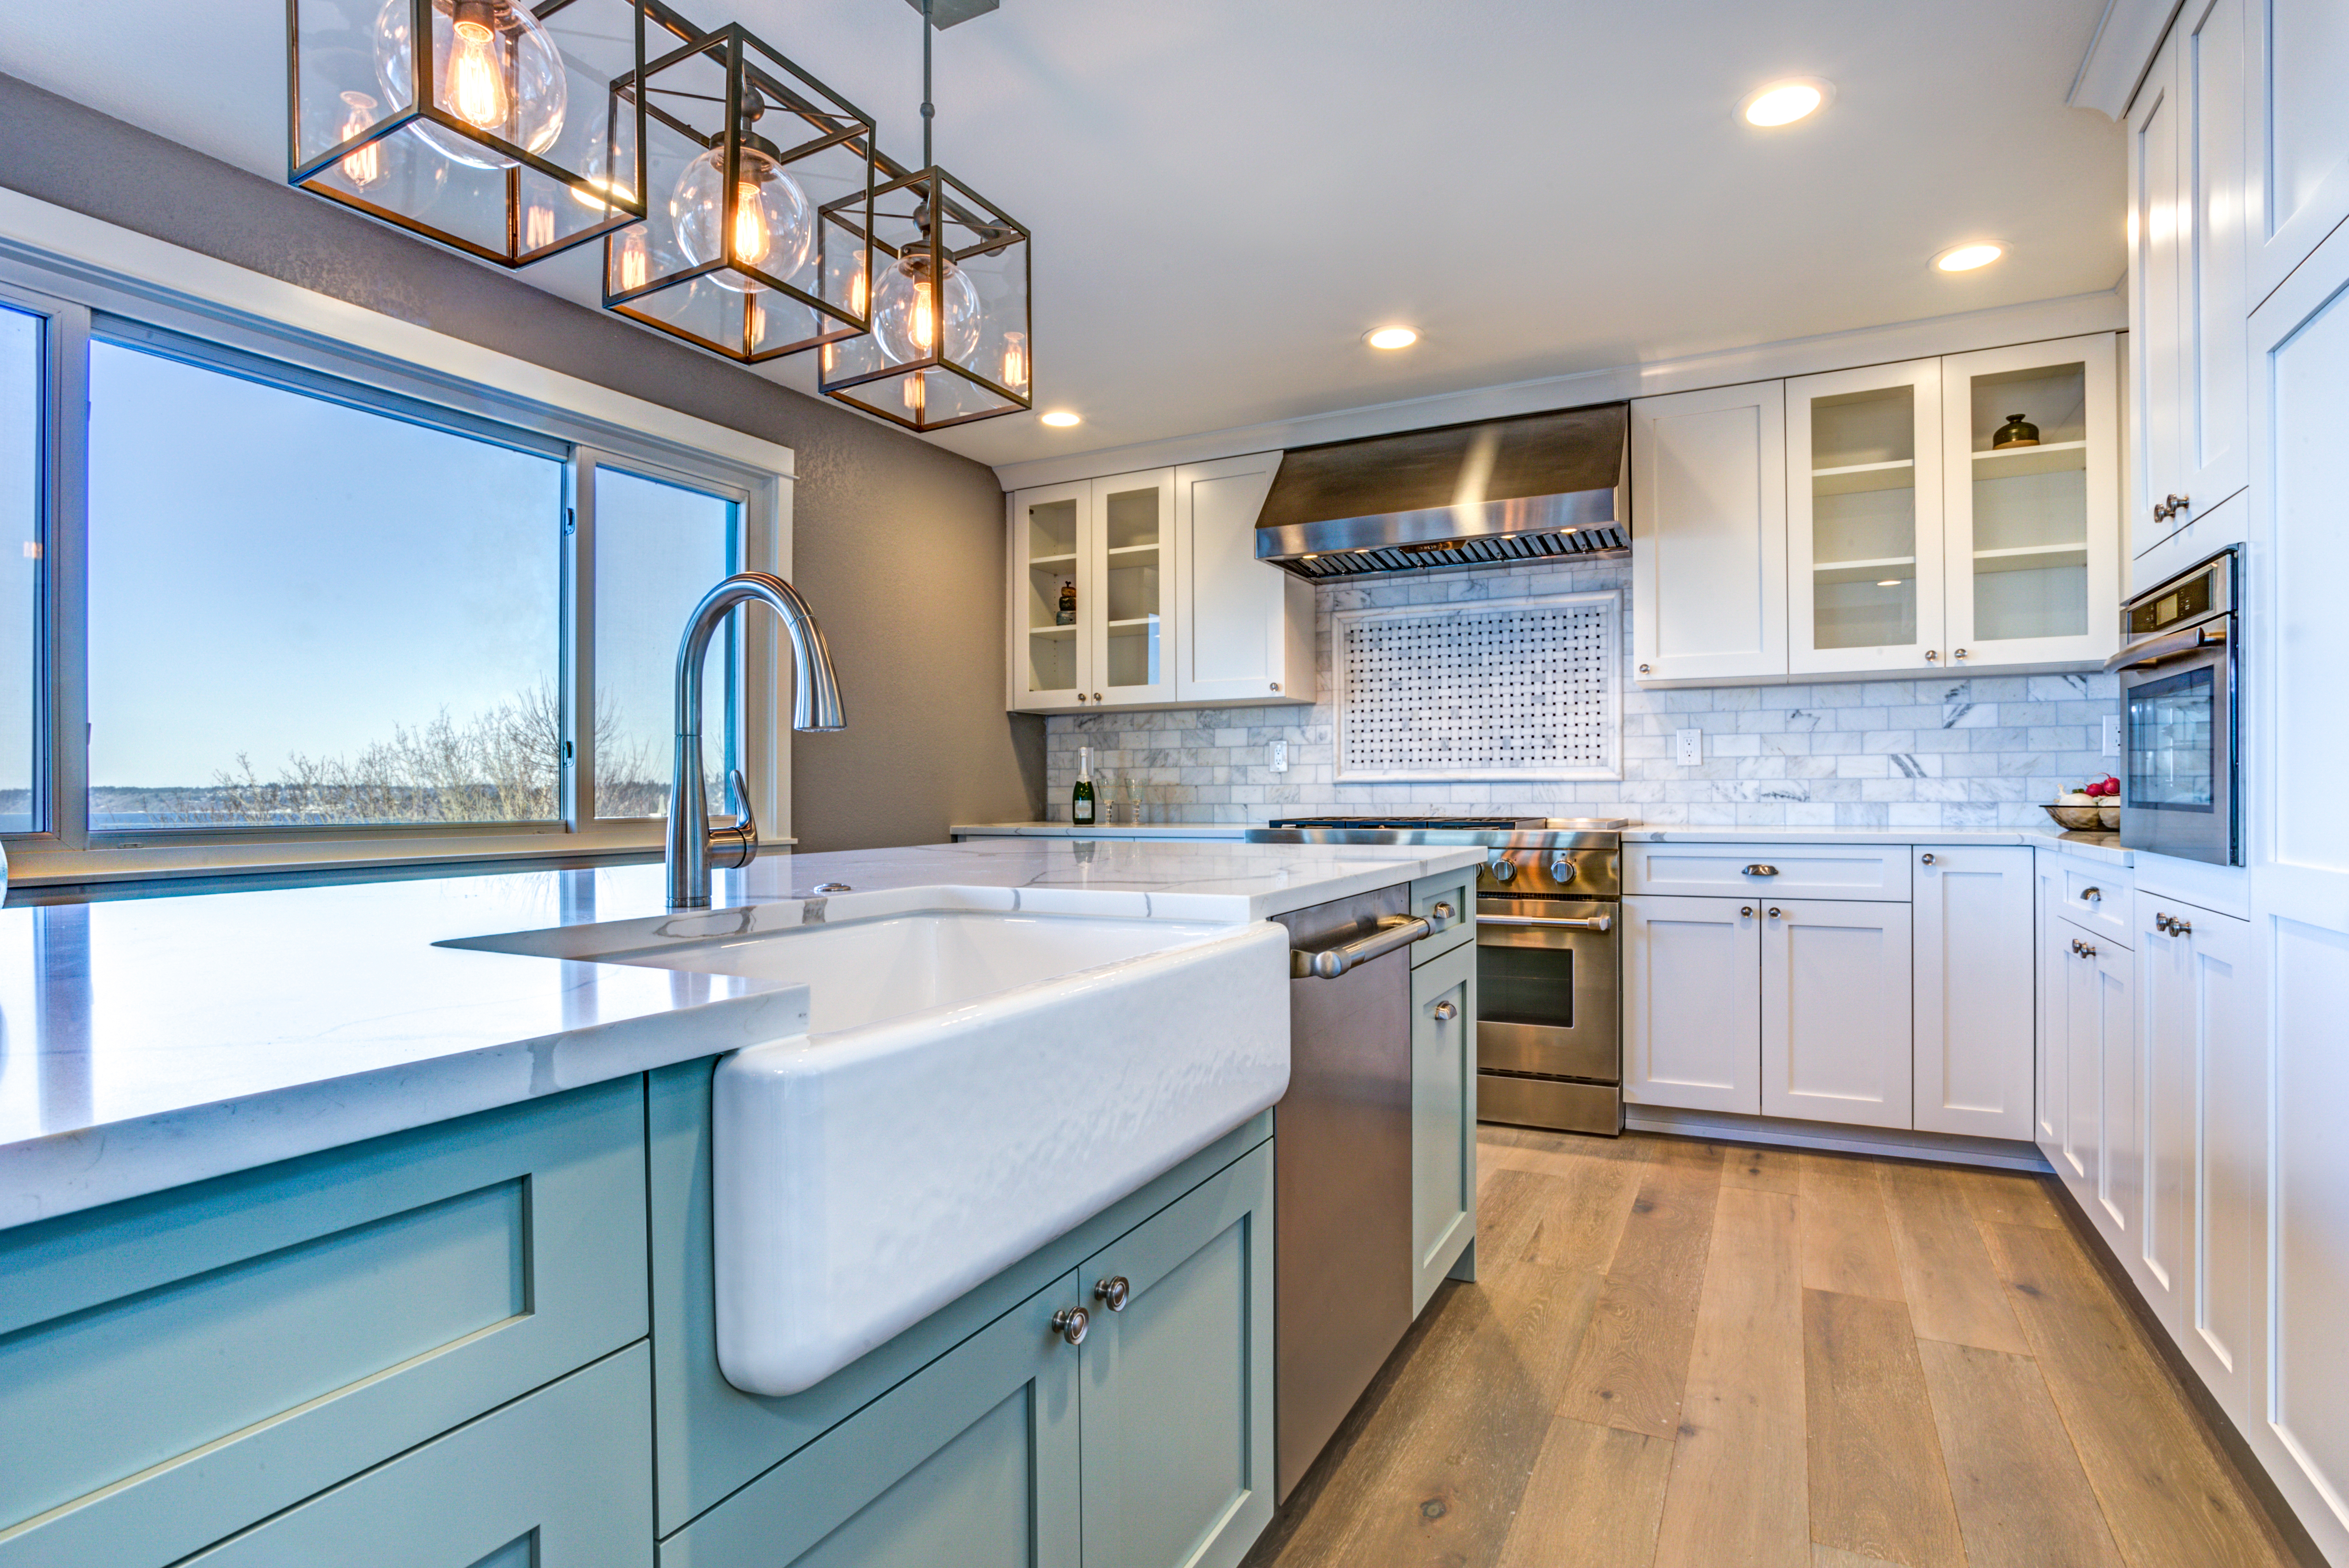 How to Move Kitchen Cabinets